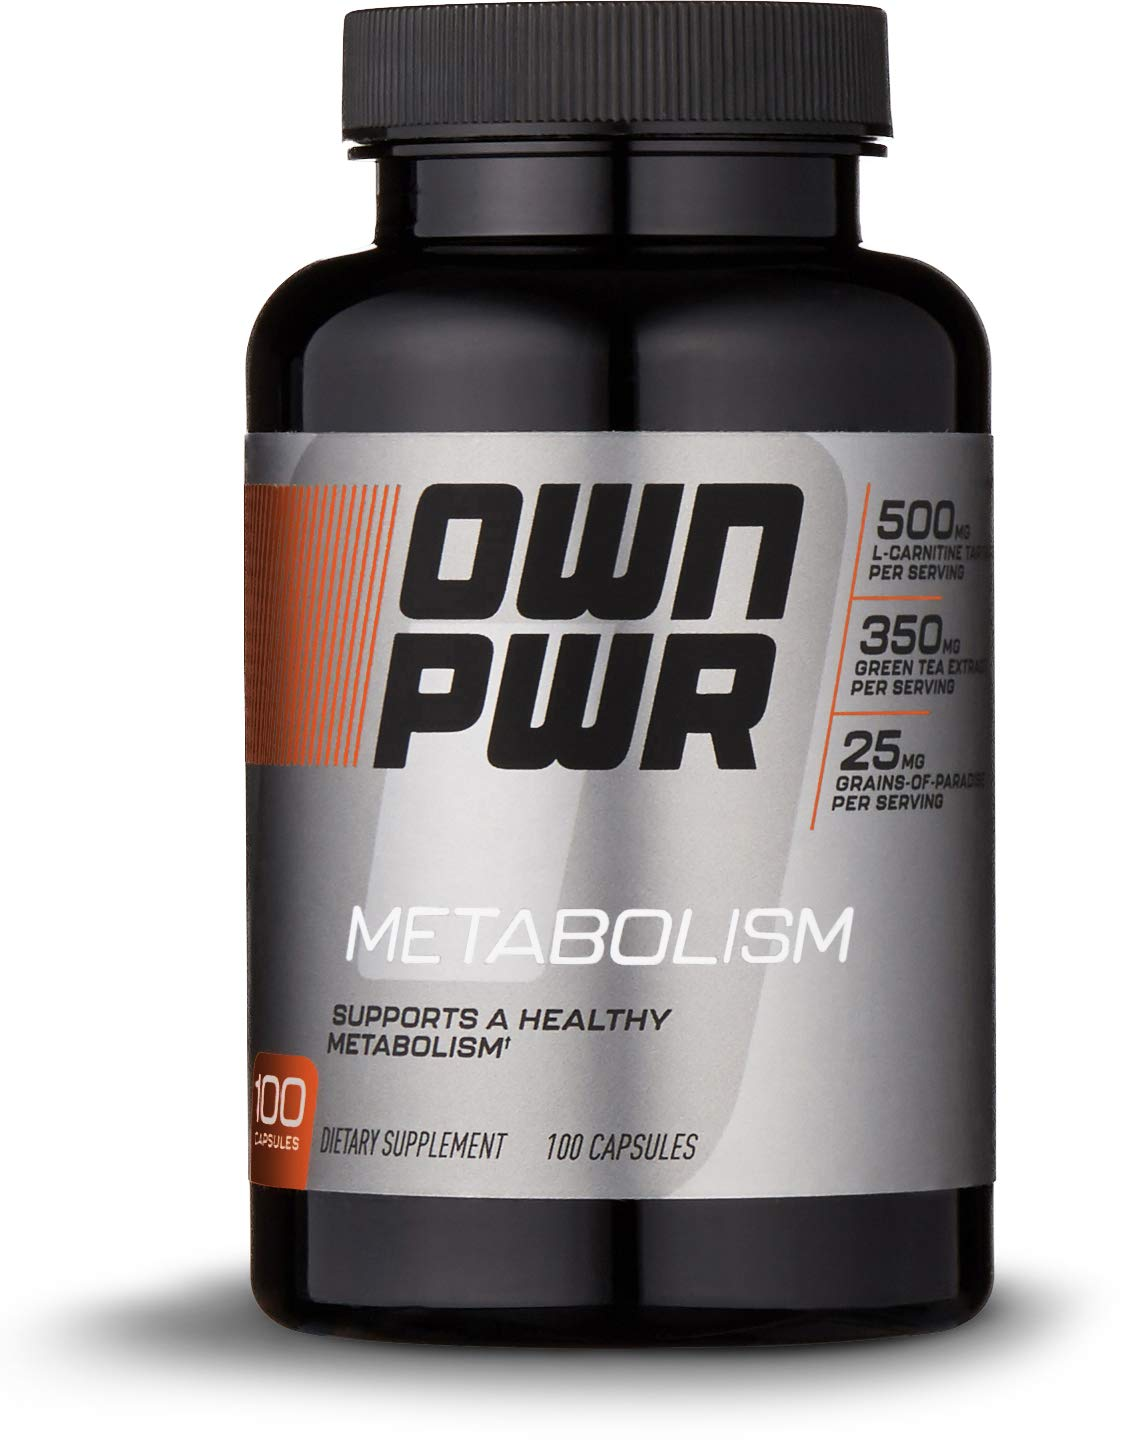 OWN PWR Metabolism Complex, 100 Capsules (50 servings), 500mg L-Carnitine, 350mg Green Tea Leaf Extract, 25mg Grains-of-Paradise